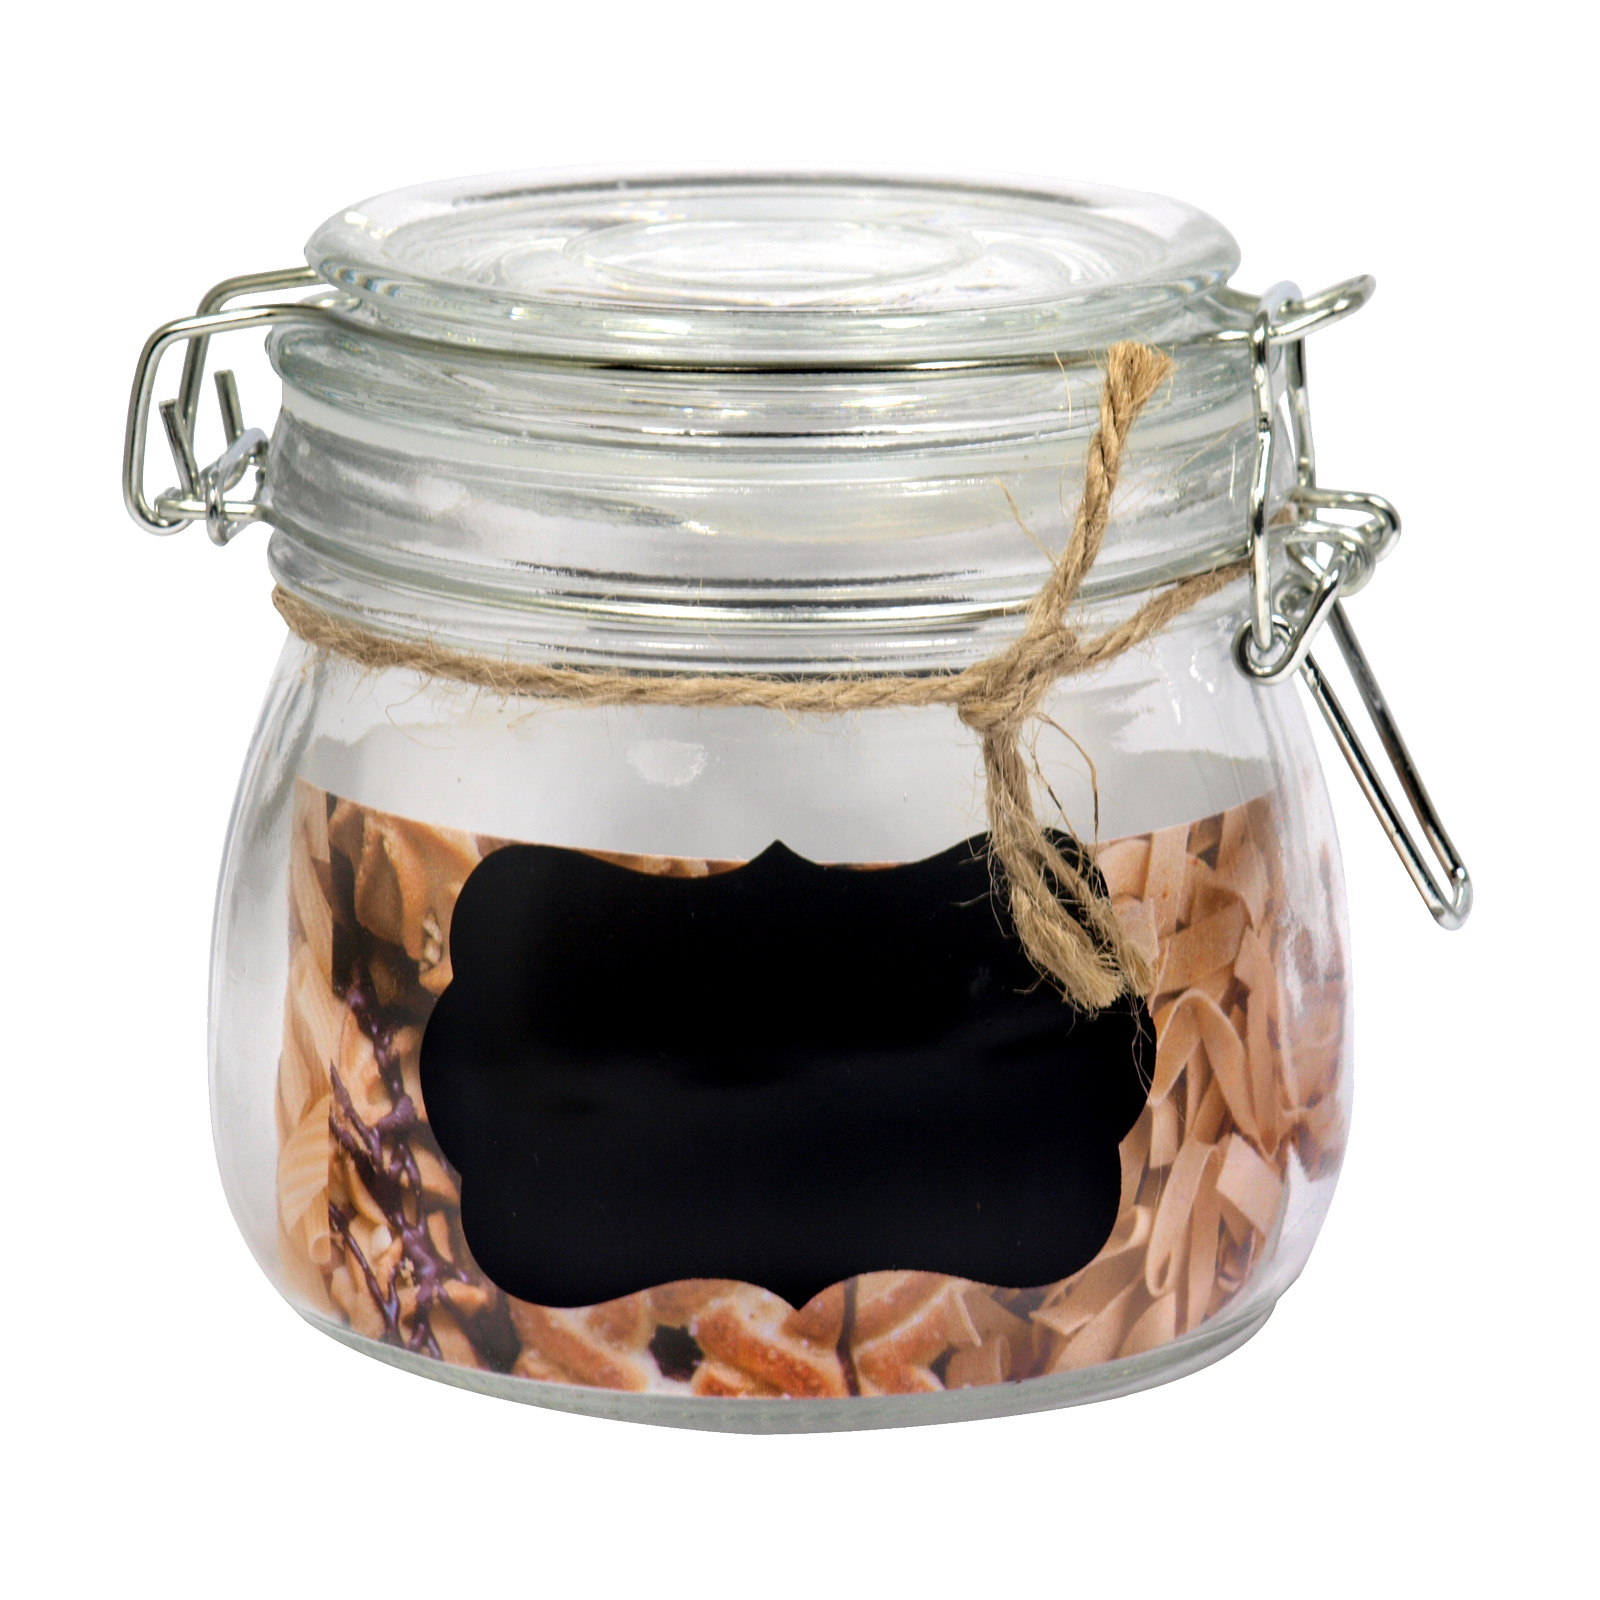 SIL GLASS STORAGE JAR+CHALKBOARD 10CMX12CM